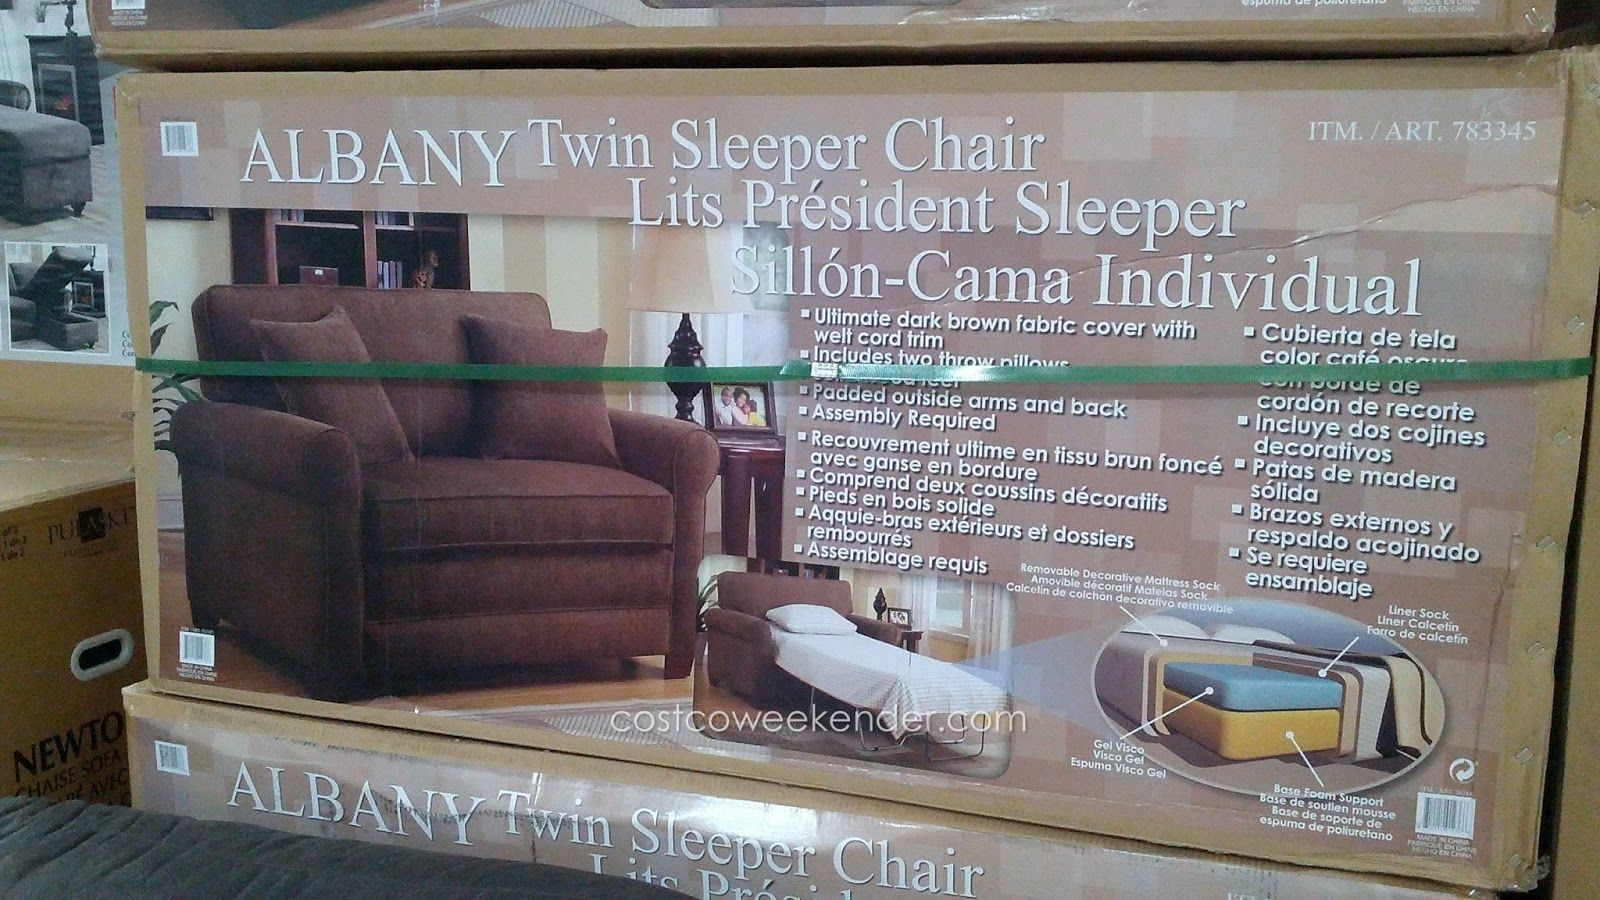 Synergy Home Albany Twin Sleeper Chair Costco Had These For 500 Tempurpedic Single Mattress Really Co Twin Sleeper Chair Sleeper Chair Home Design Decor